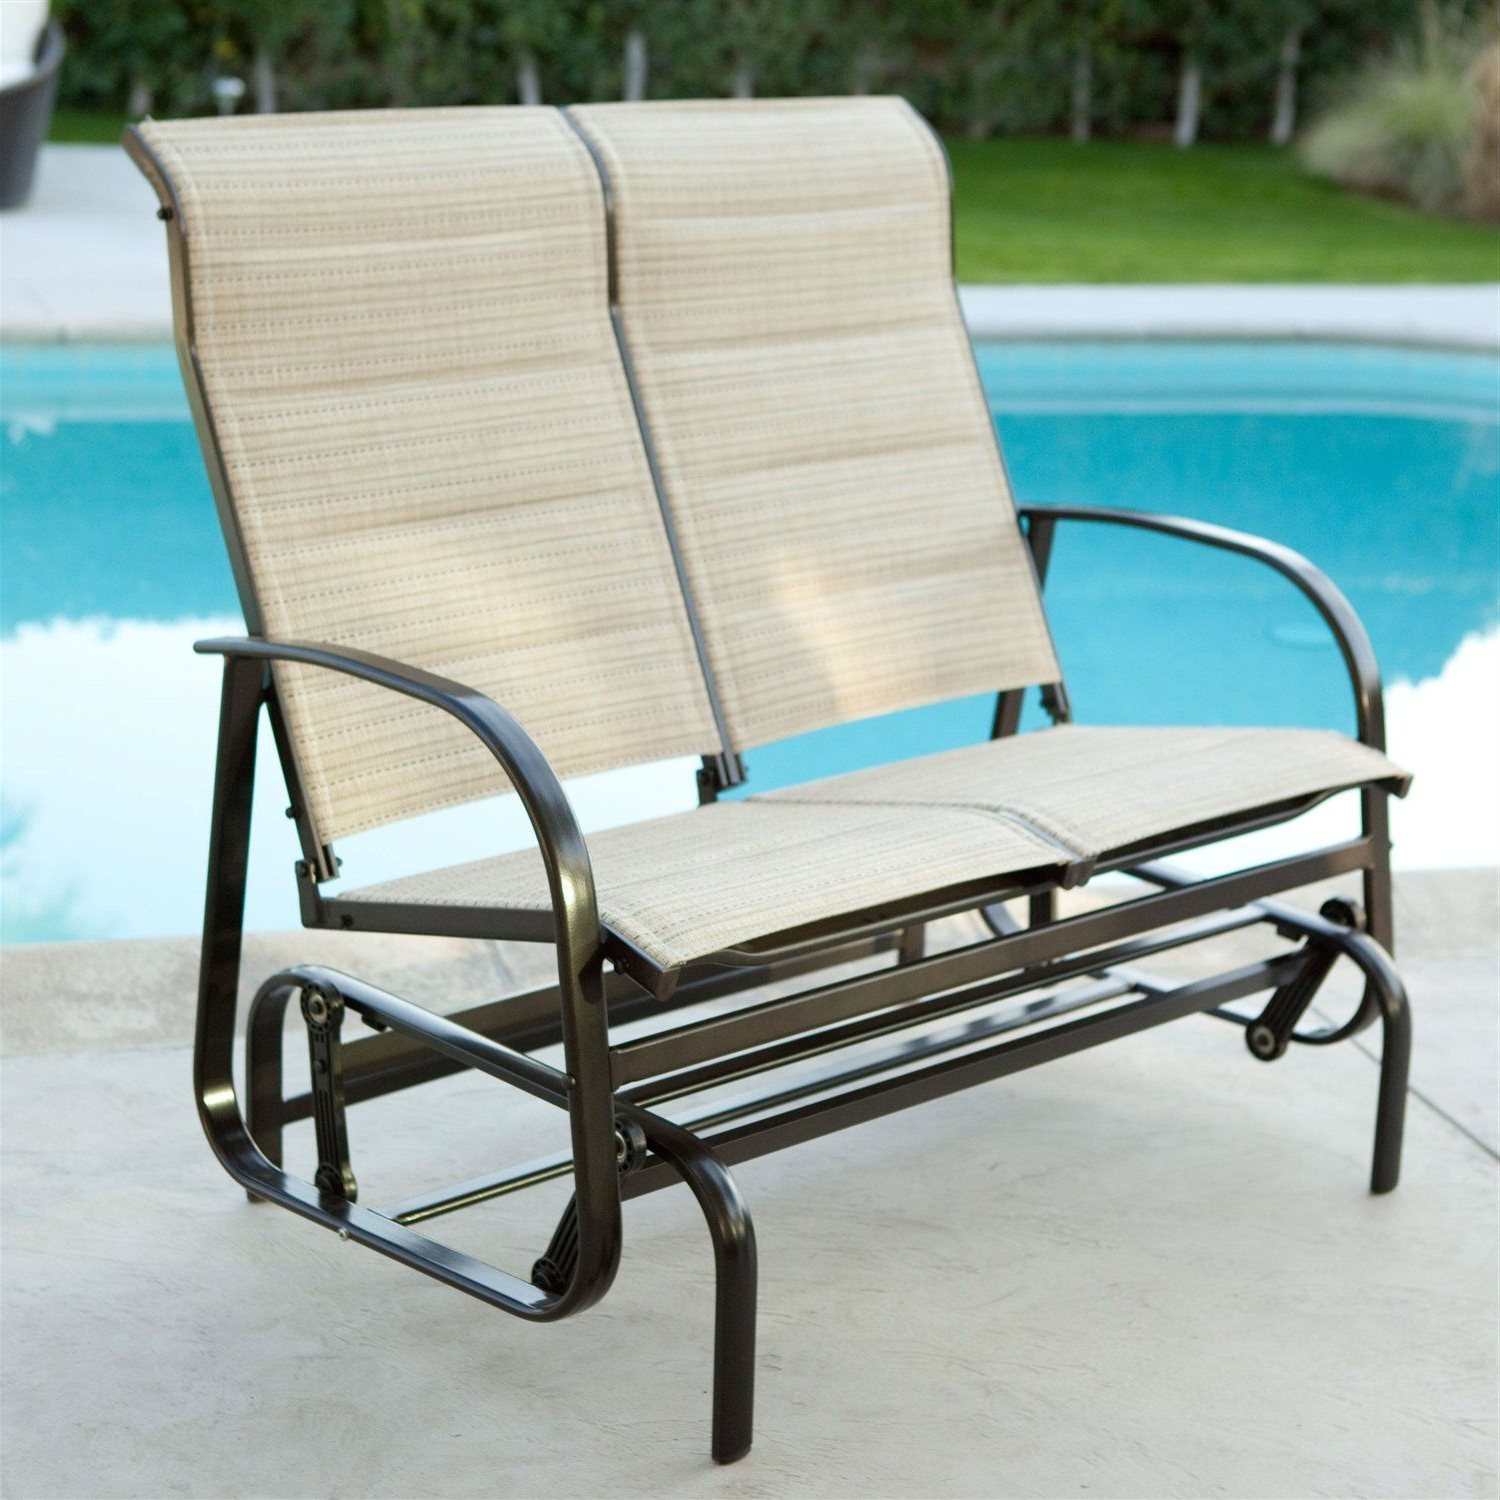 Widely Used Padded Sling Double Gliders In Outdoor Glider Patio Chair Loveseat With Padded Sling Seats (Gallery 10 of 30)